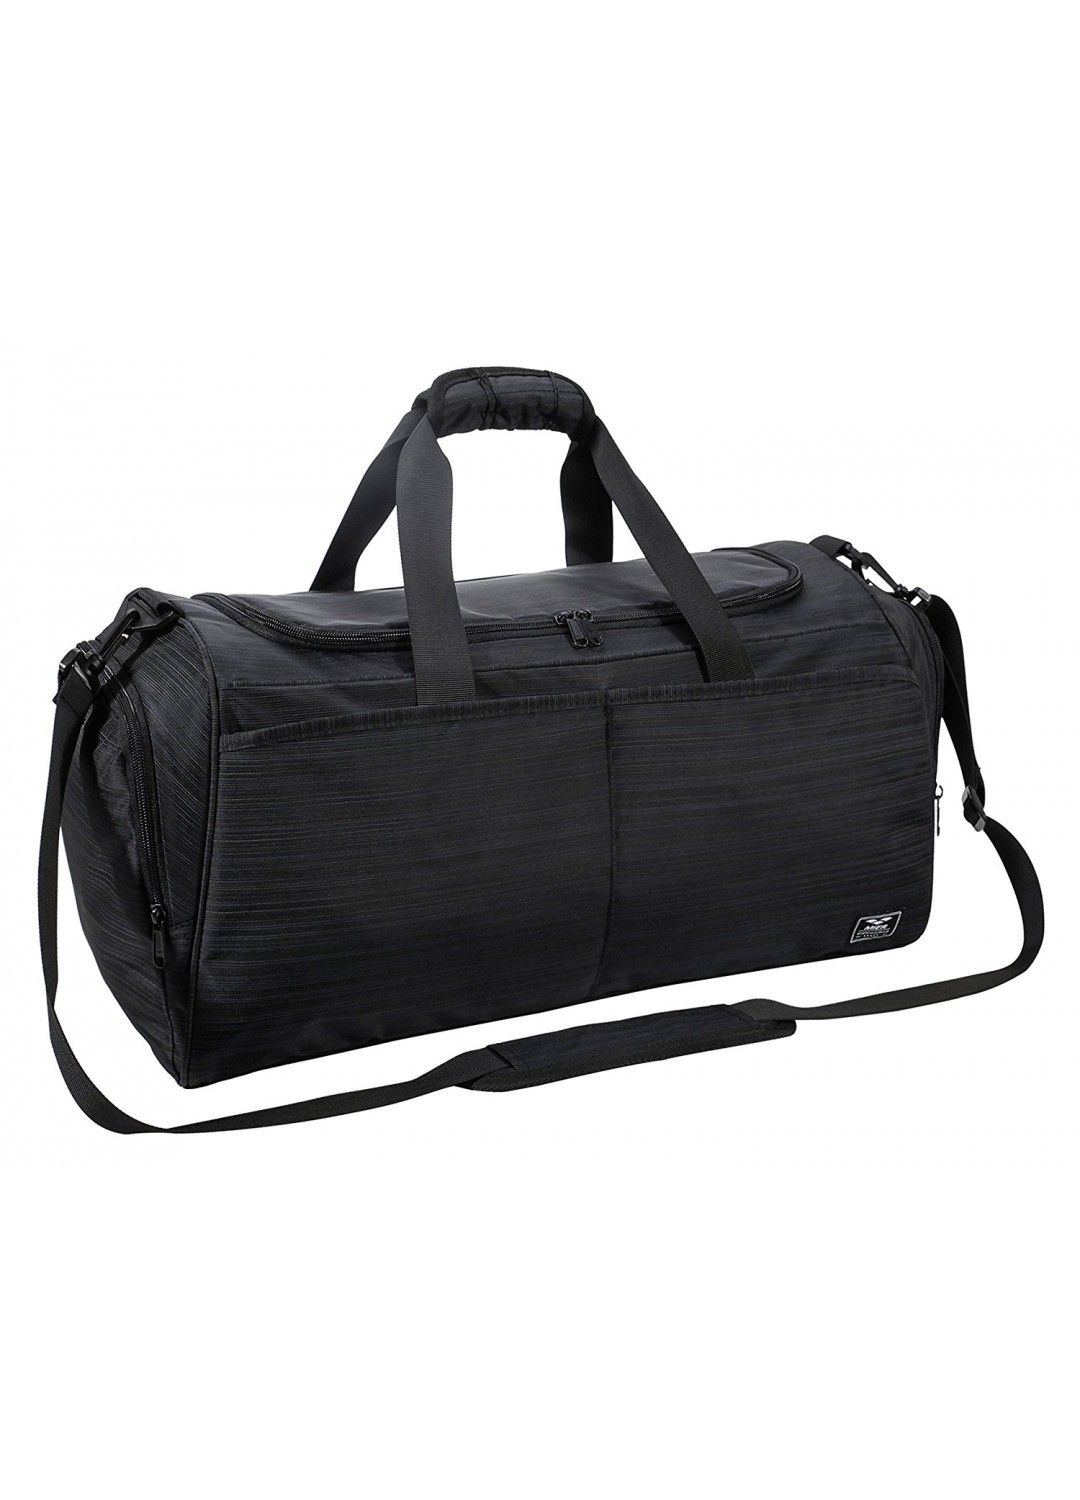 MIER Gym Bag for Women and Men Sports Duffle with shoe Compartment ... 0ca99209d7cf1